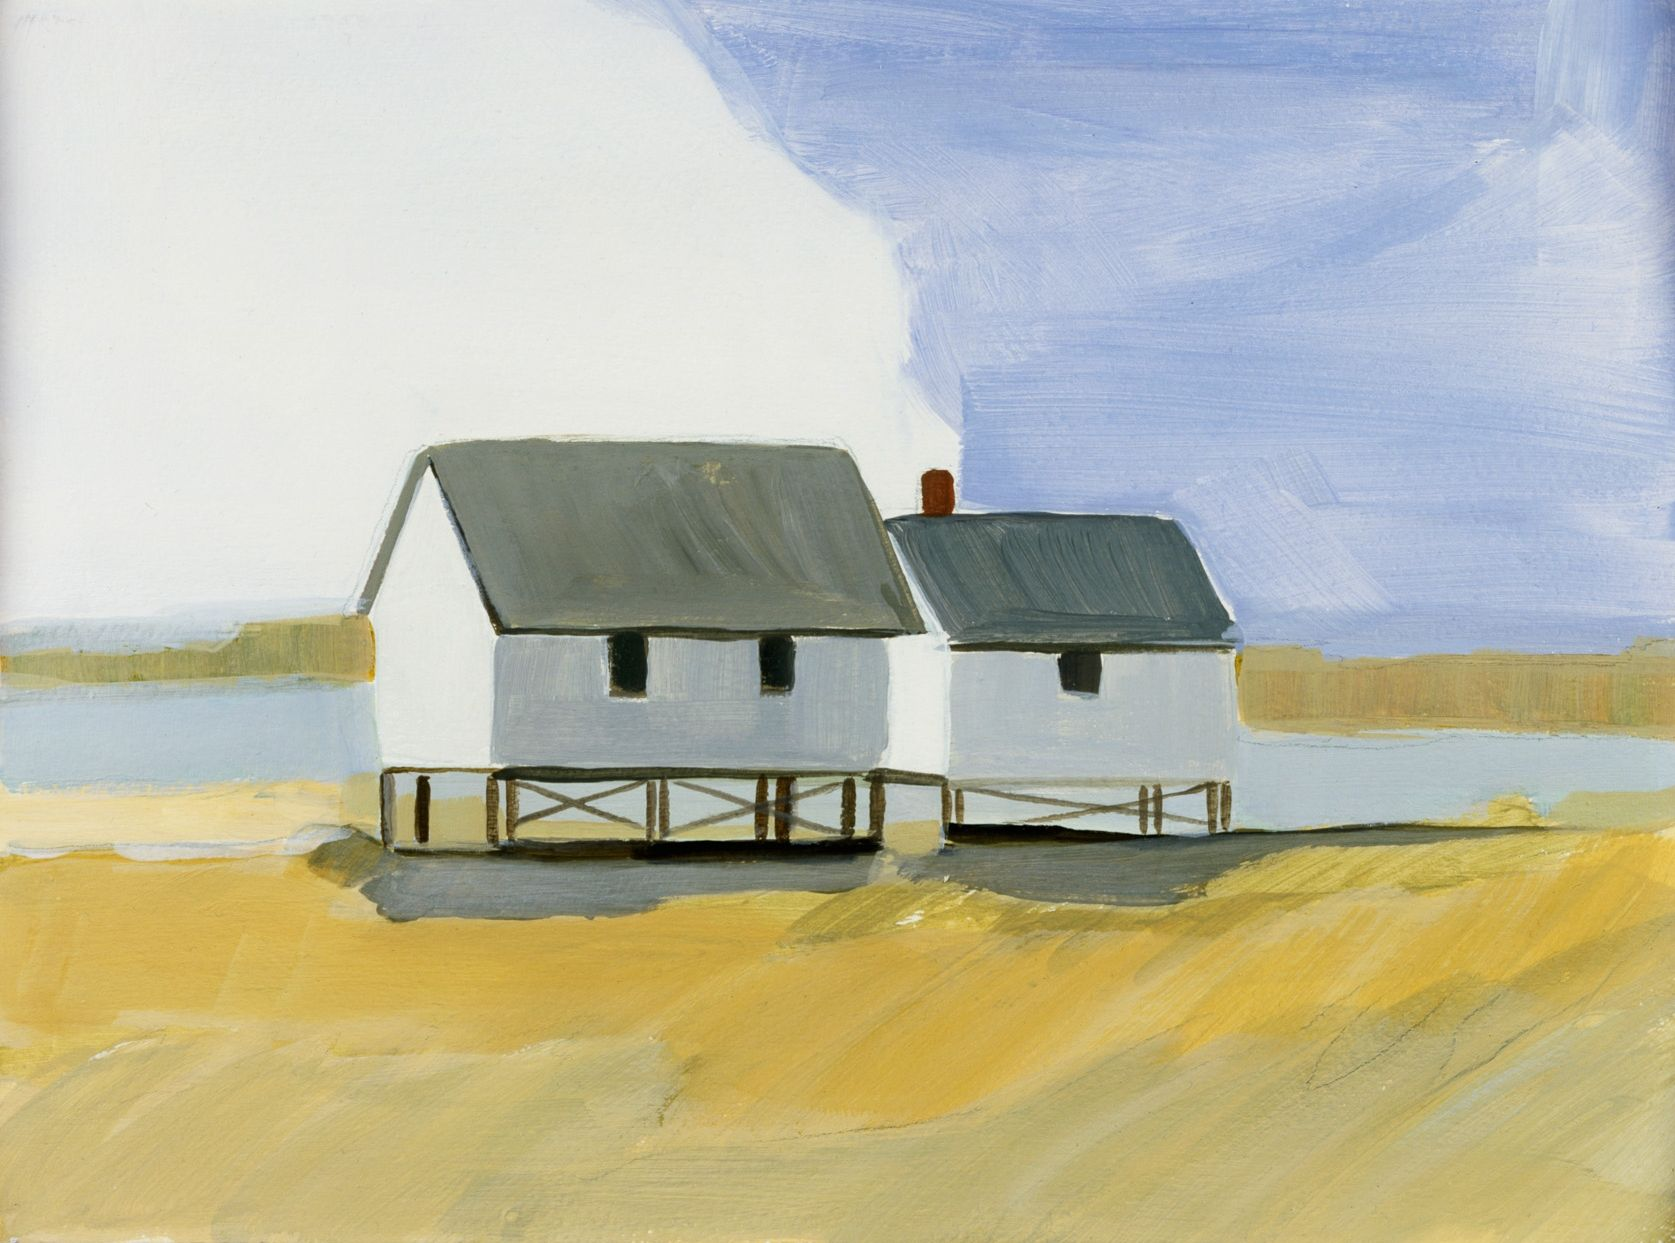 Maureen Gallace, Untitled, 2003